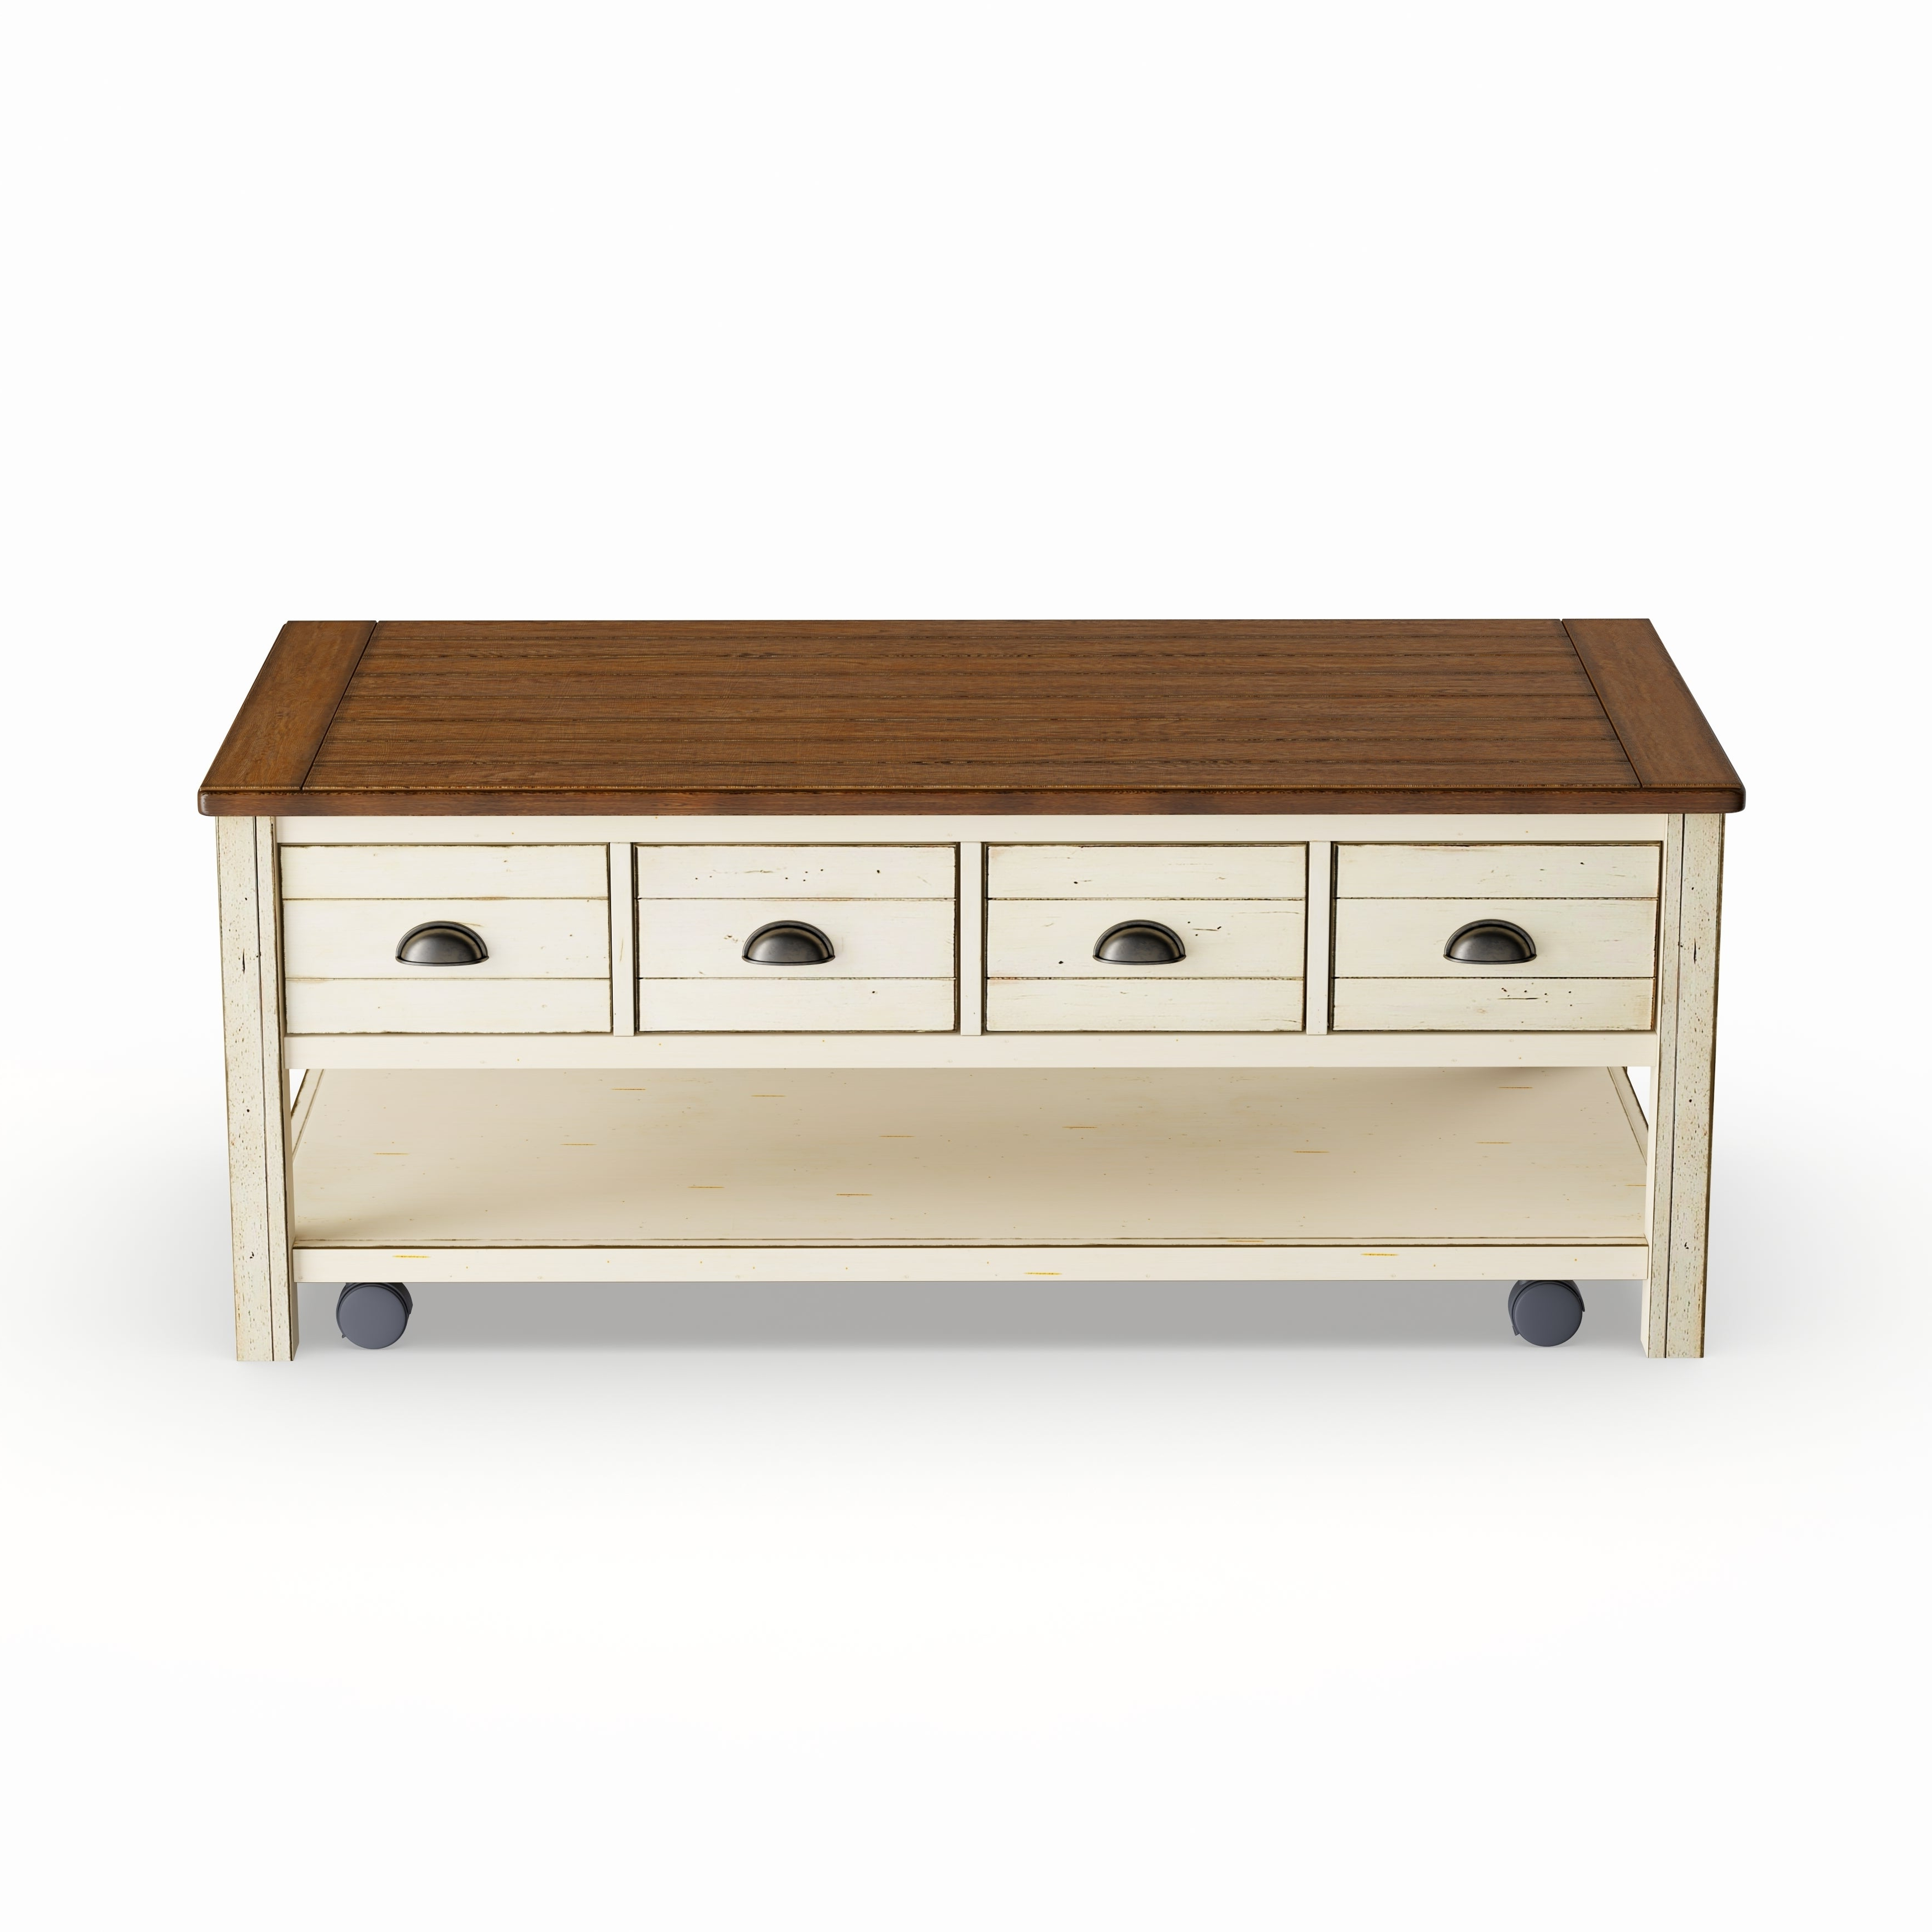 2020 Copper Grove Bowron Dark Cherry Coffee Tables In Copper Grove Torngatalabaster Storage Coffee Table With Casters (View 1 of 20)